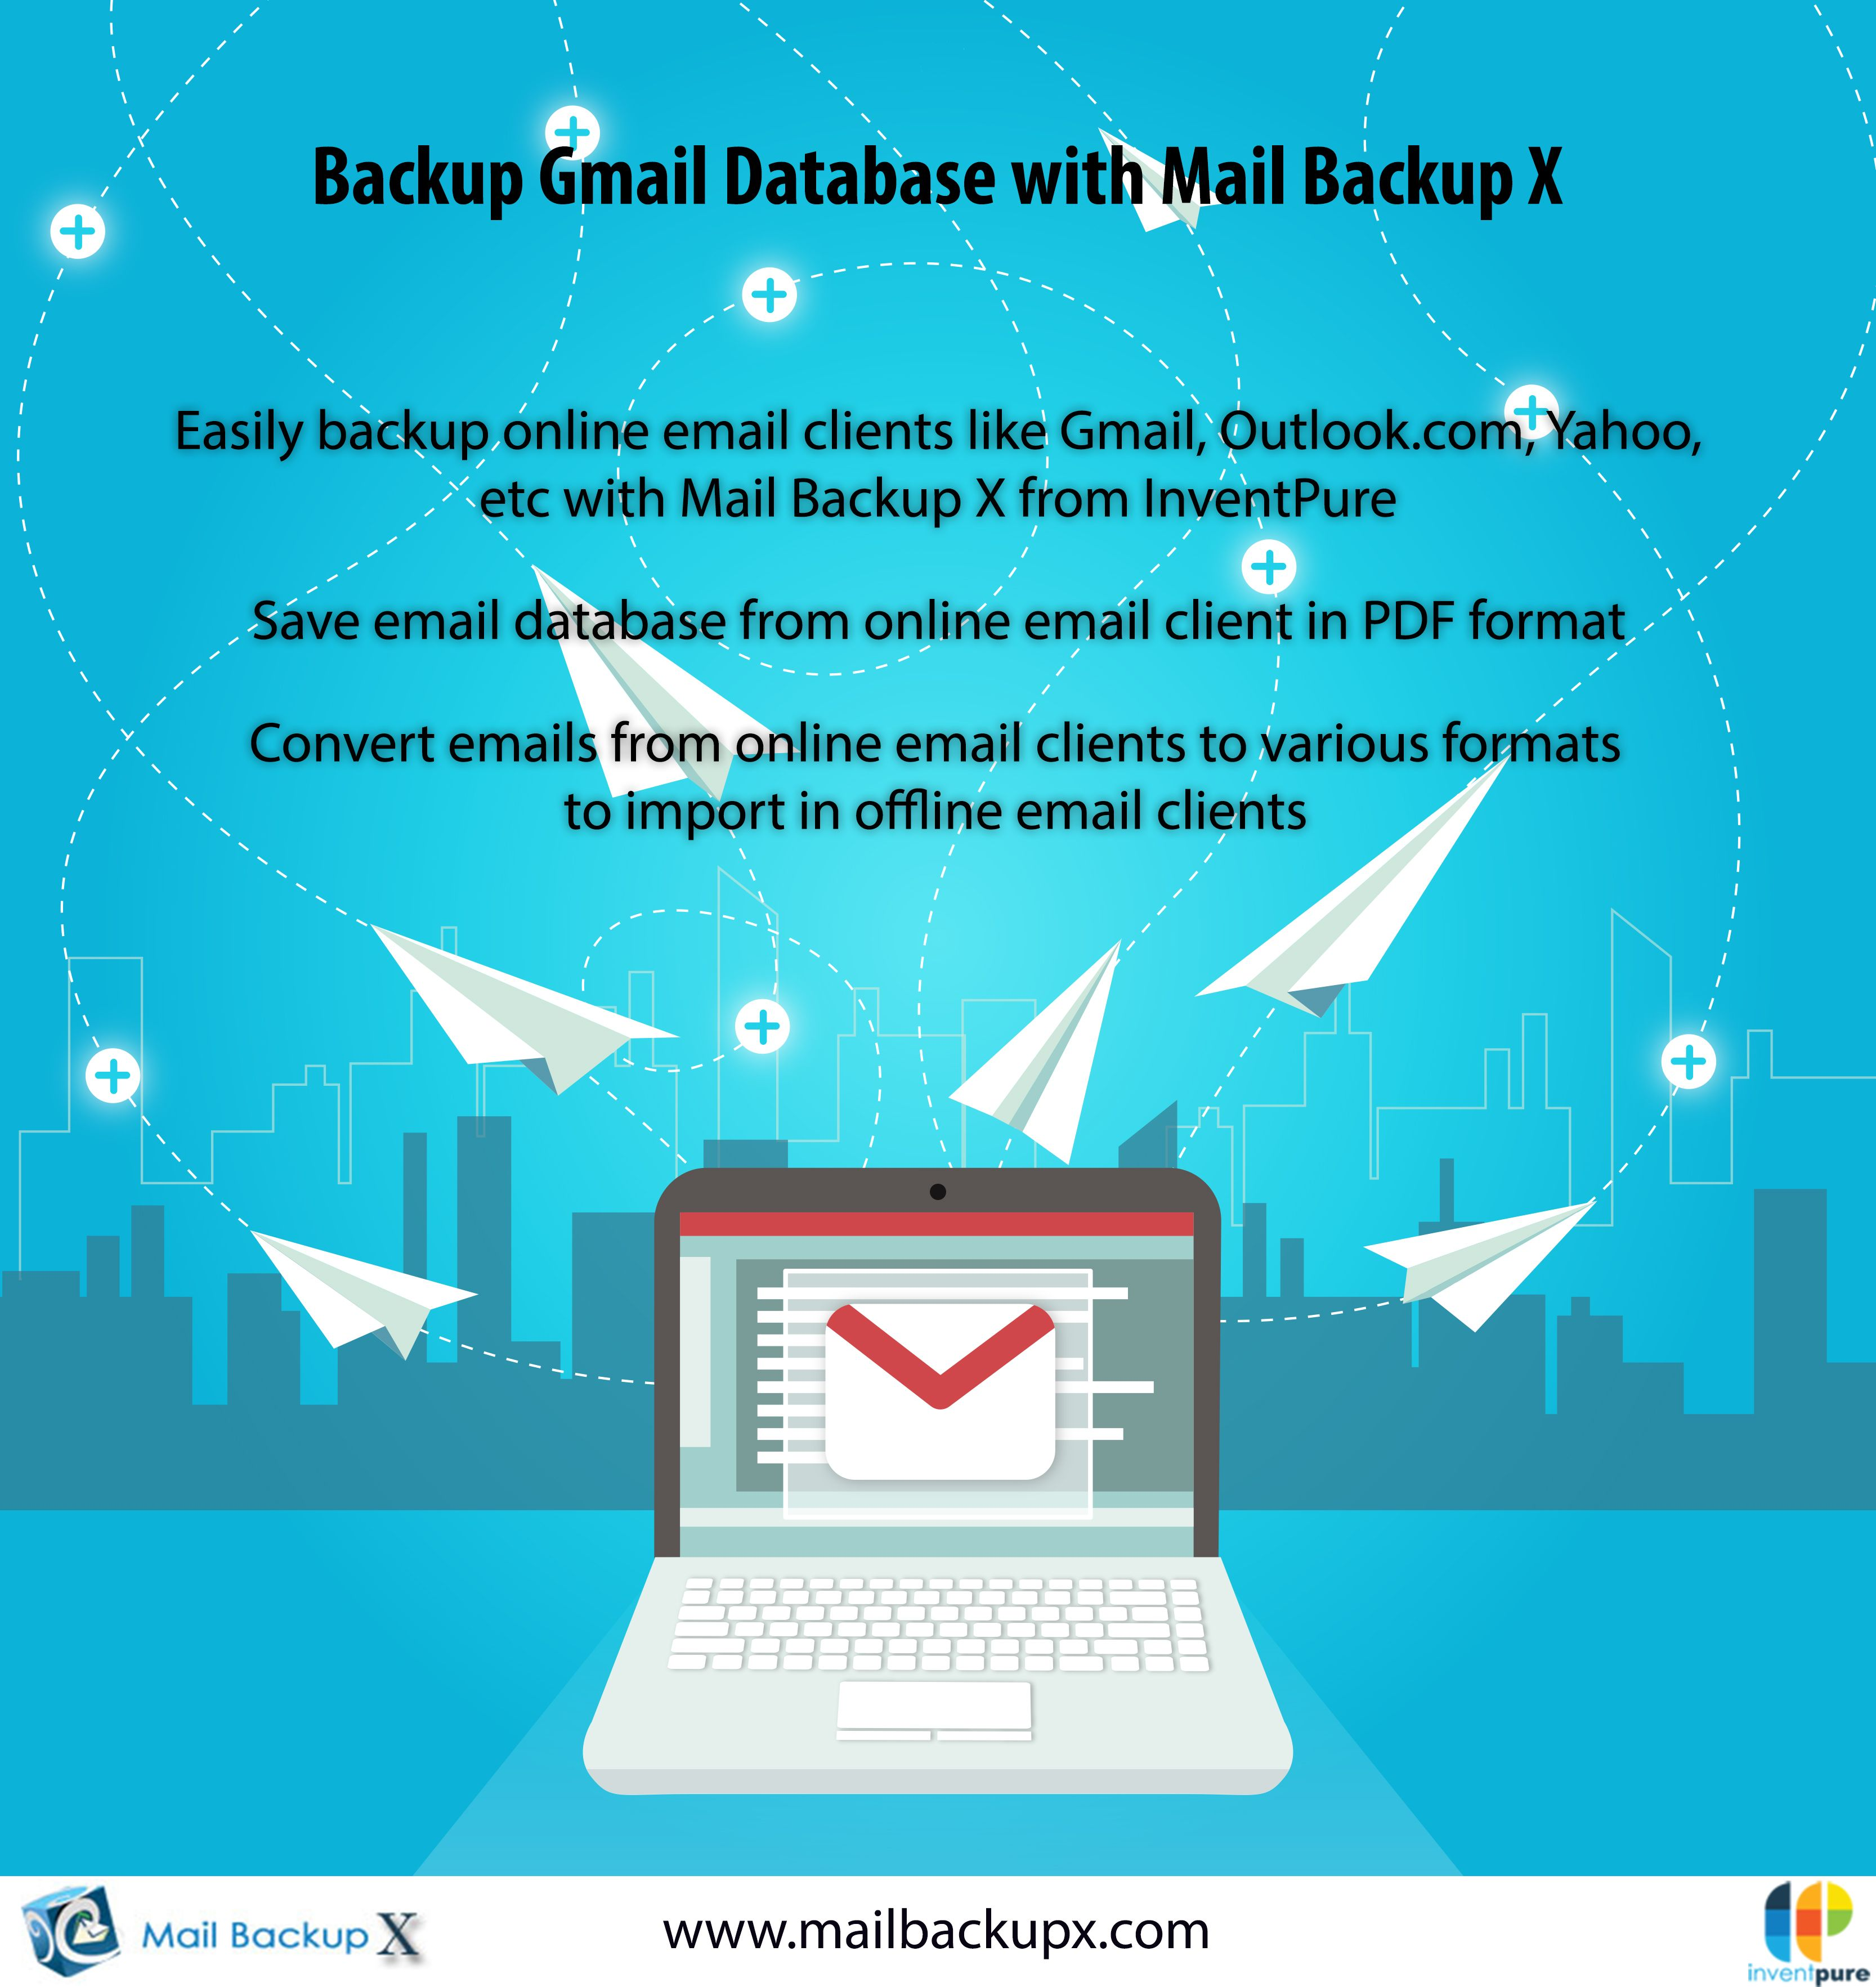 Pin by Mail Backup X on Mail Backup Application for Mac